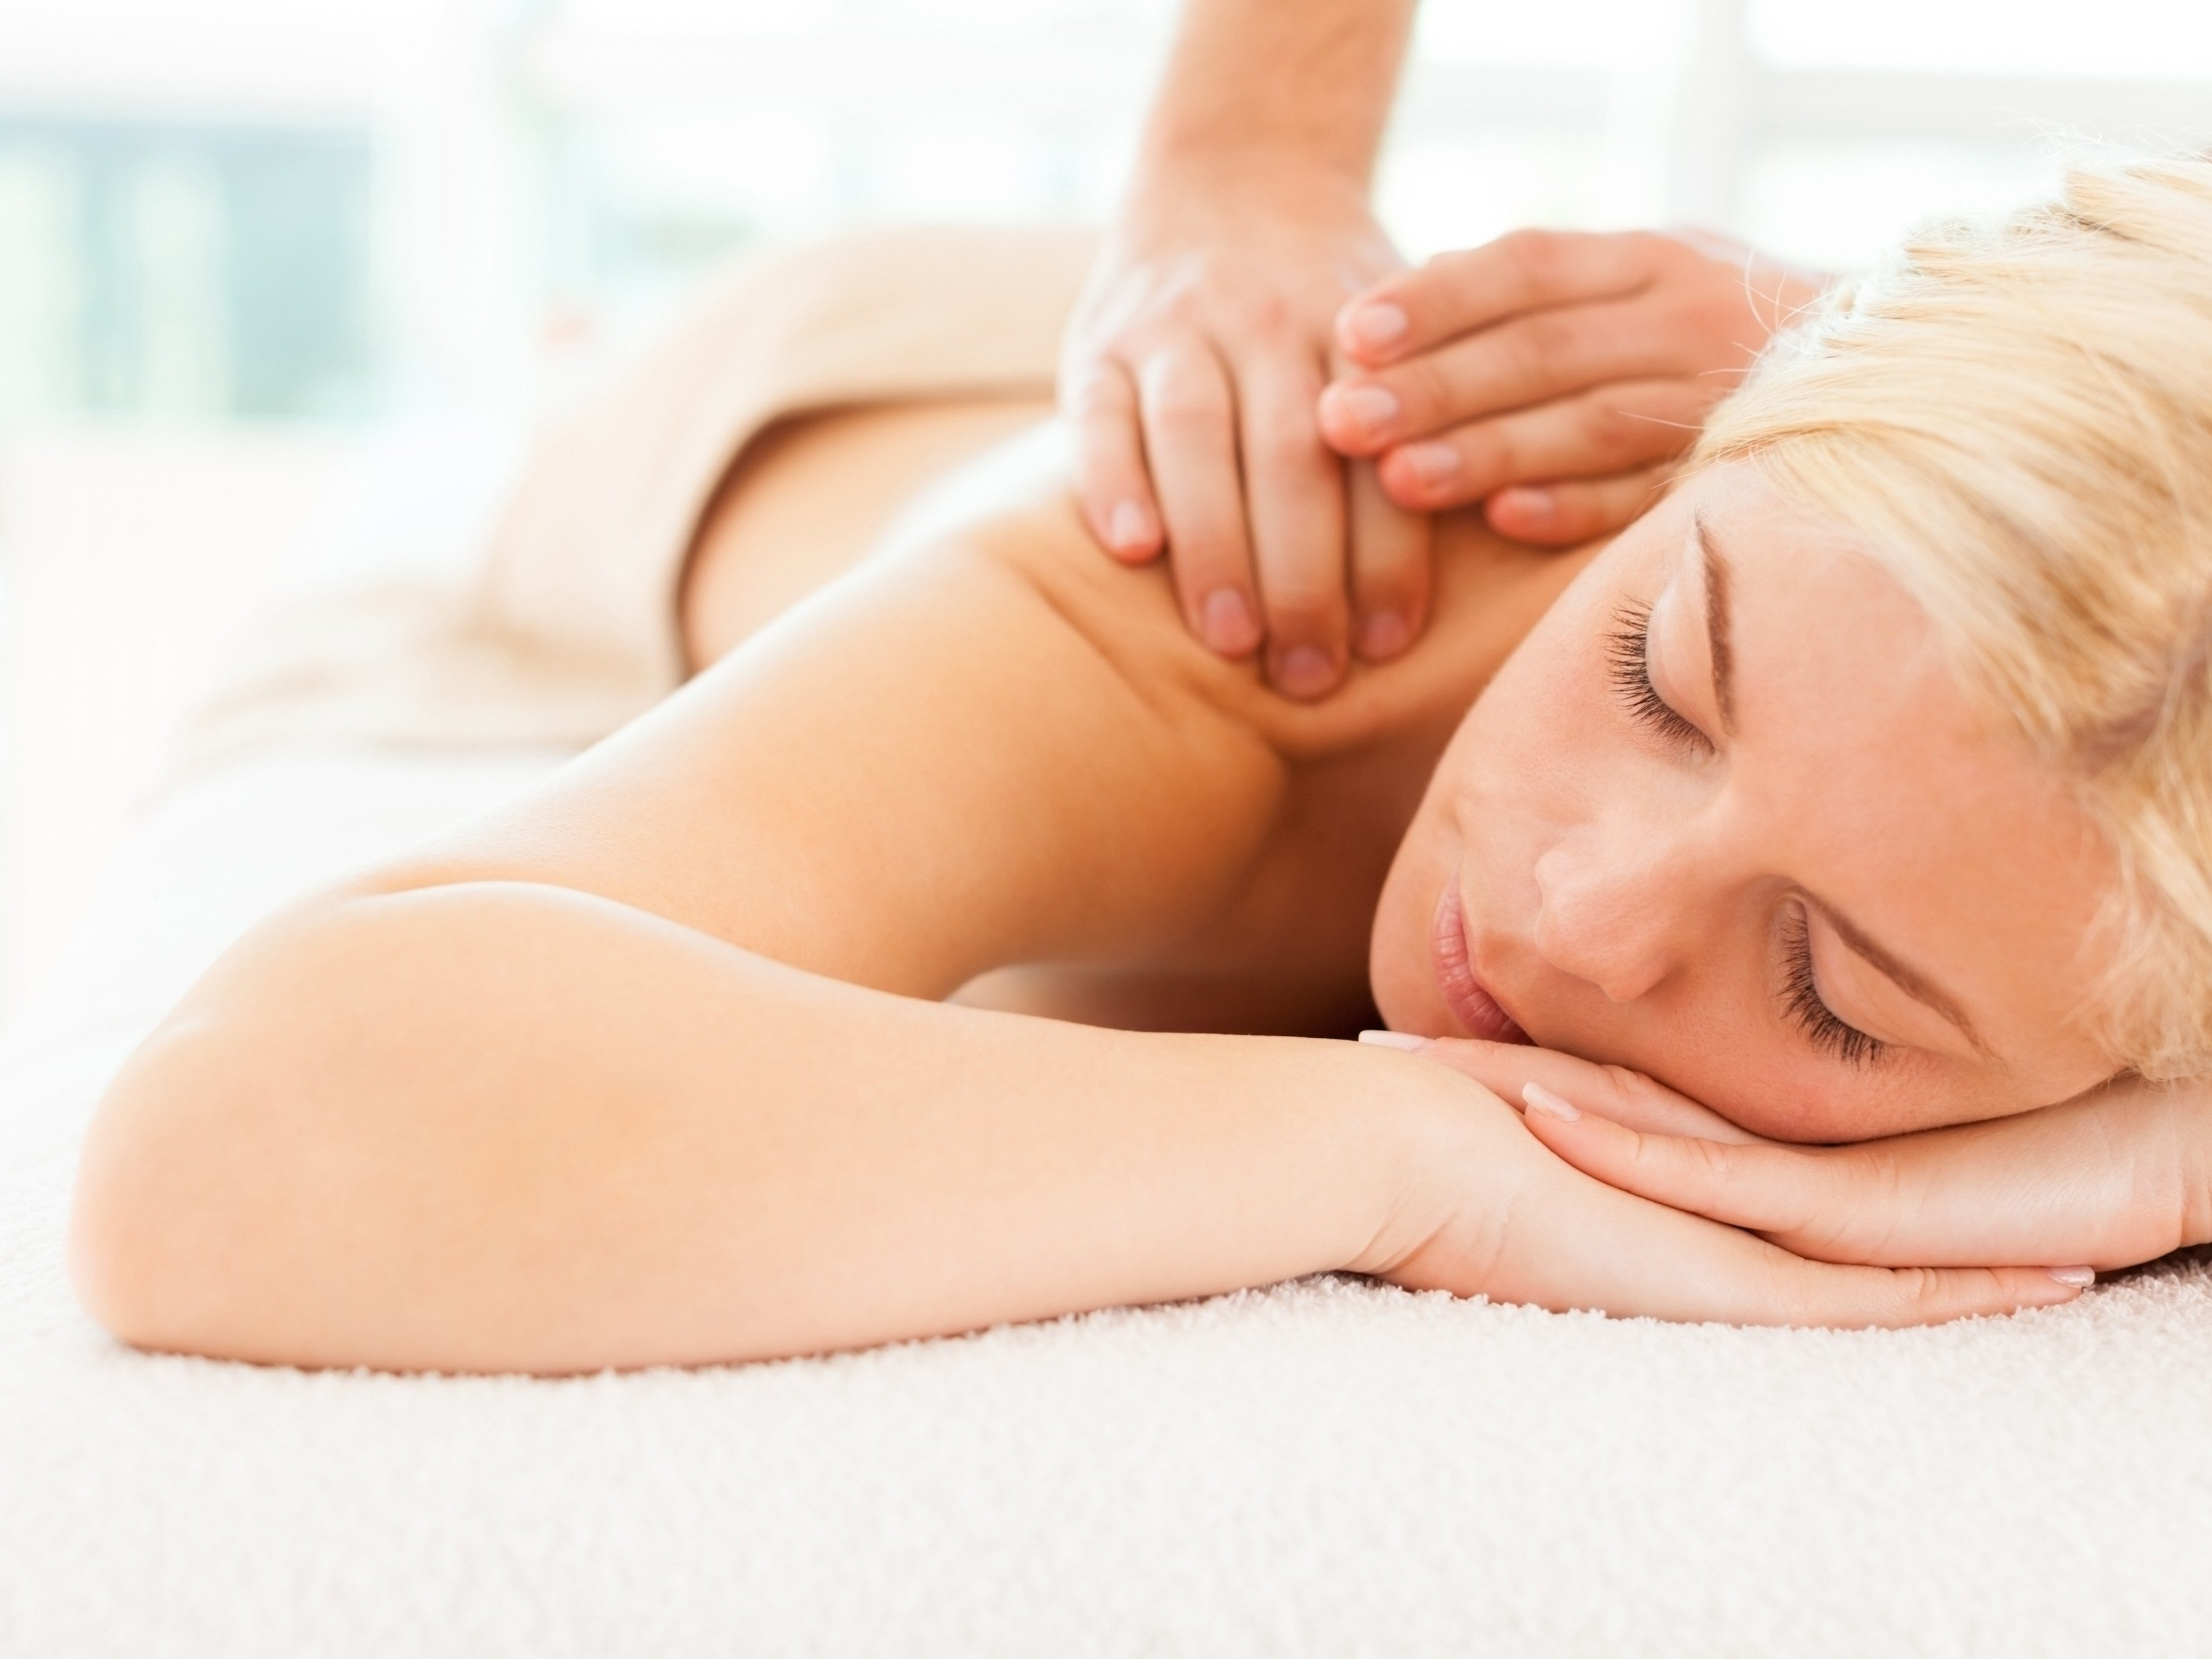 4. What You Should Know About Massage